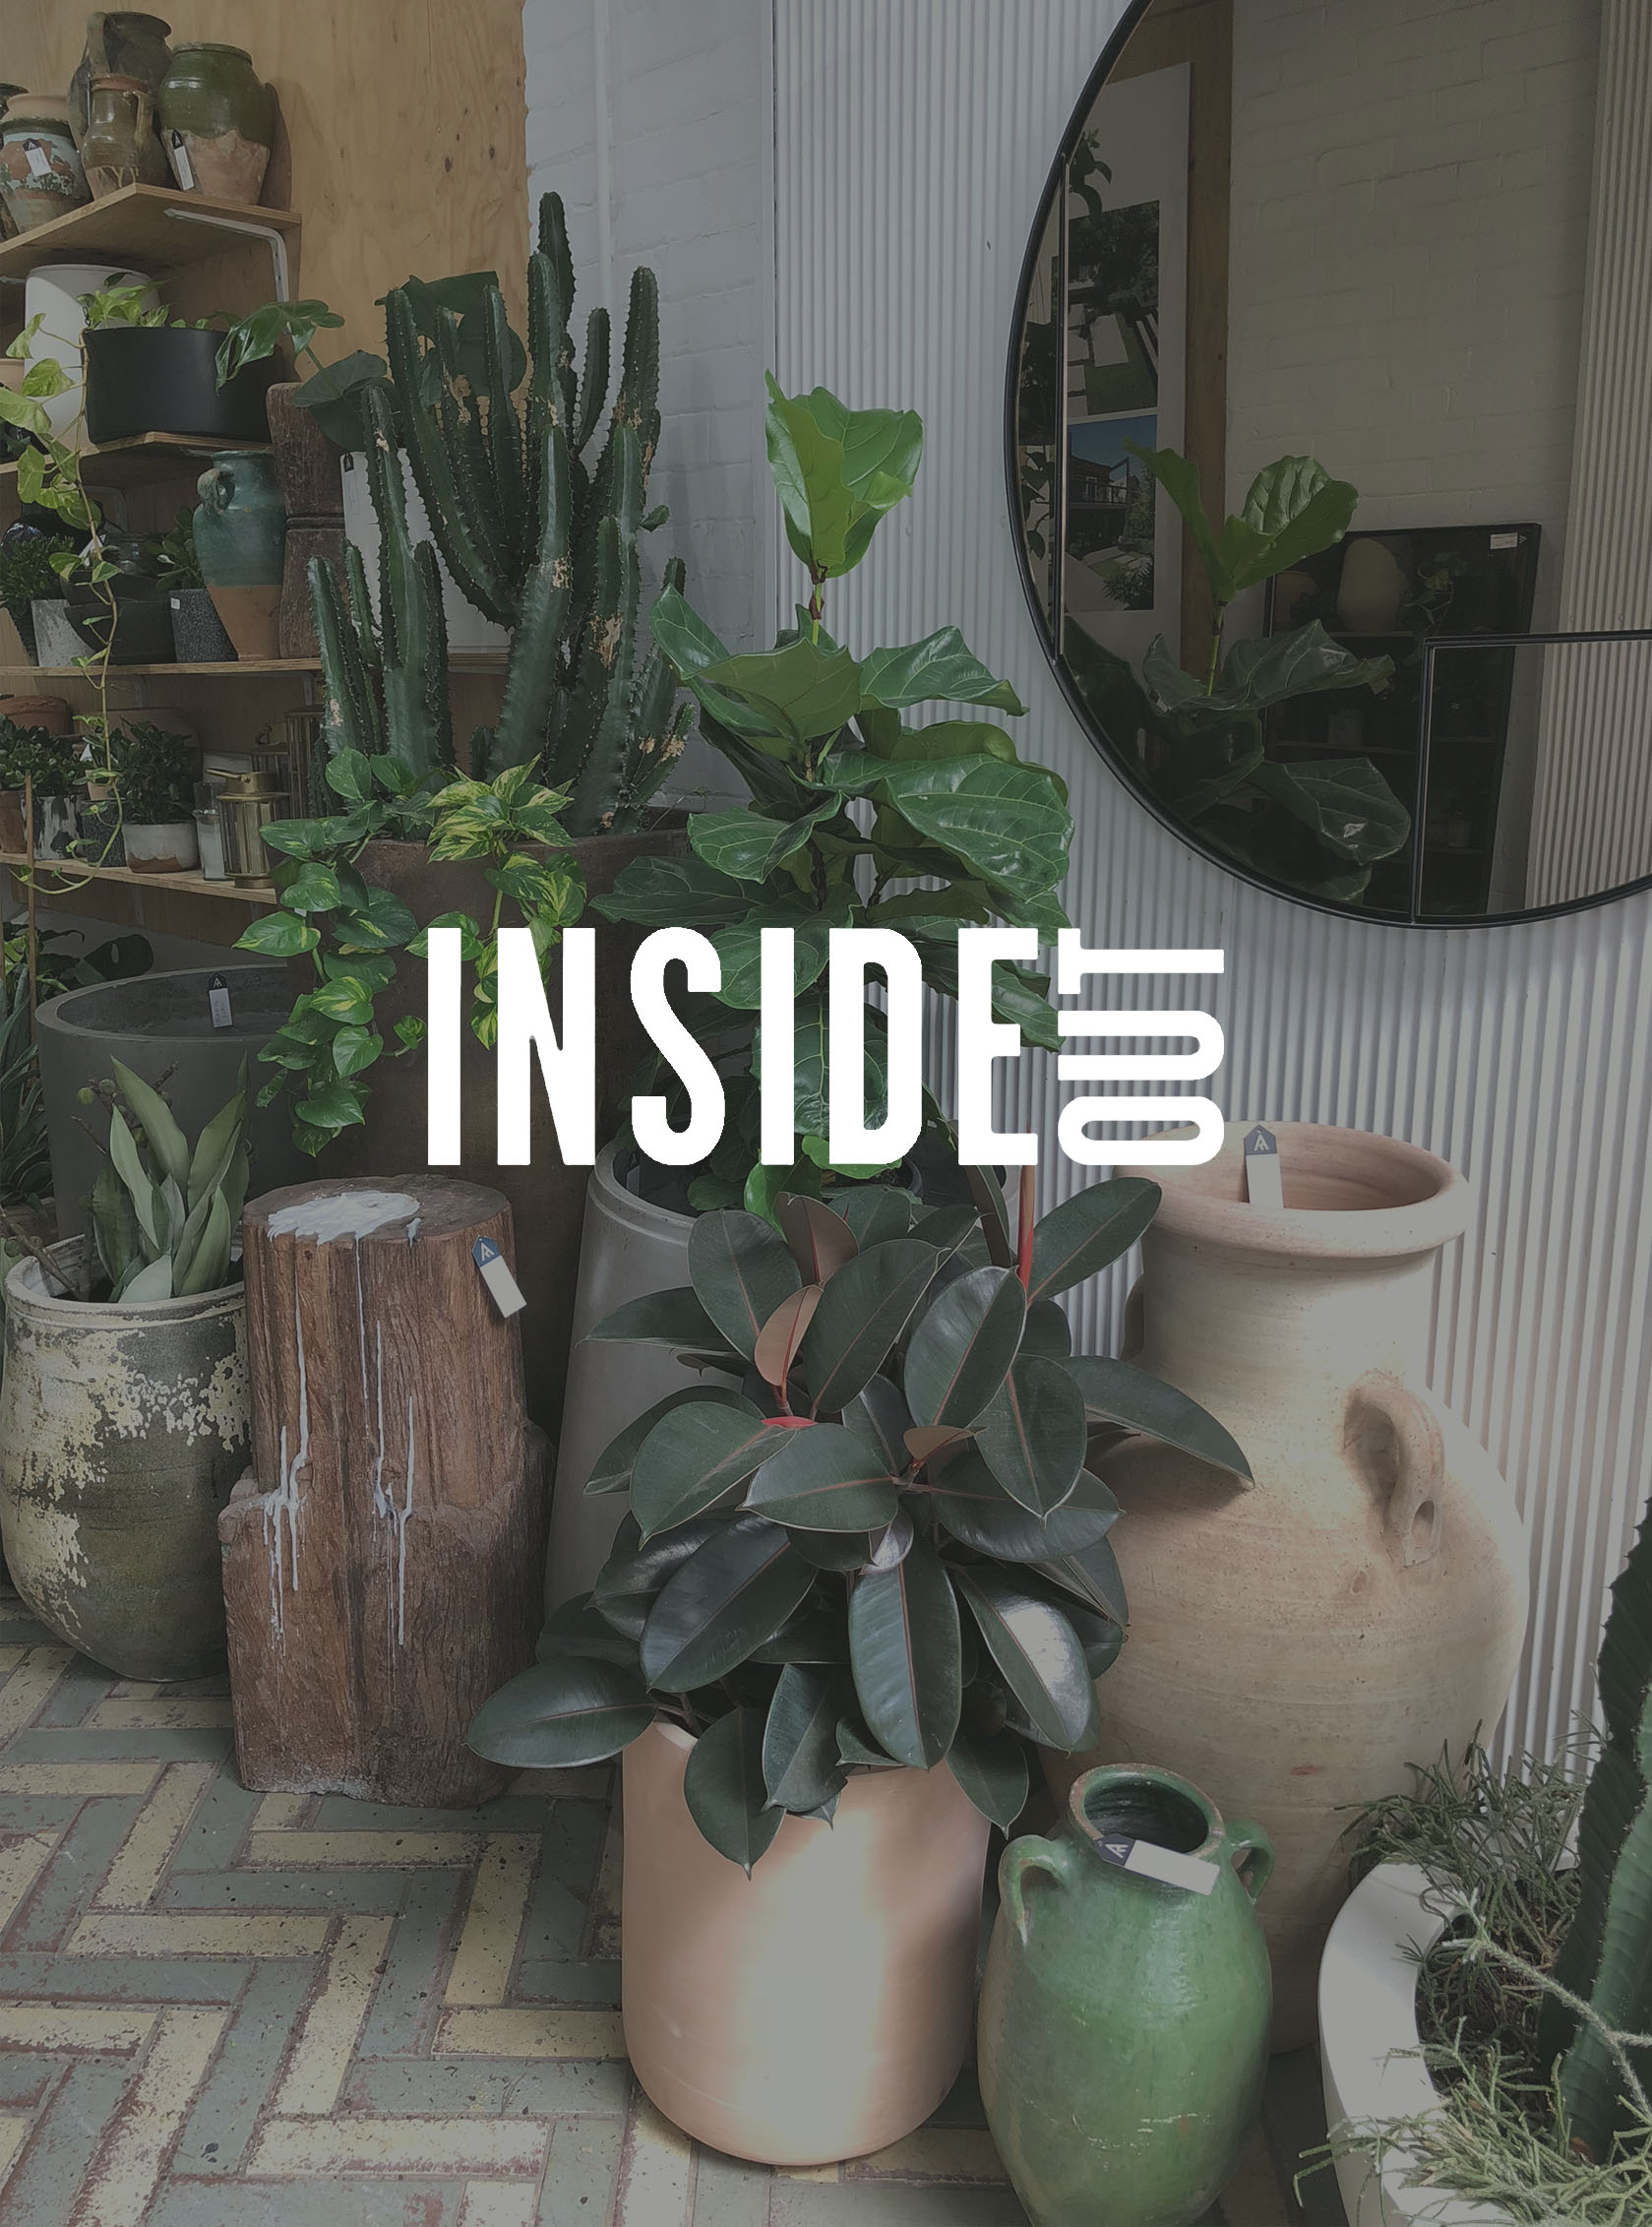 Inside Out - 'The Biggest Trends in Indoor Plants and How to Care For Them'Feb 14, 2018